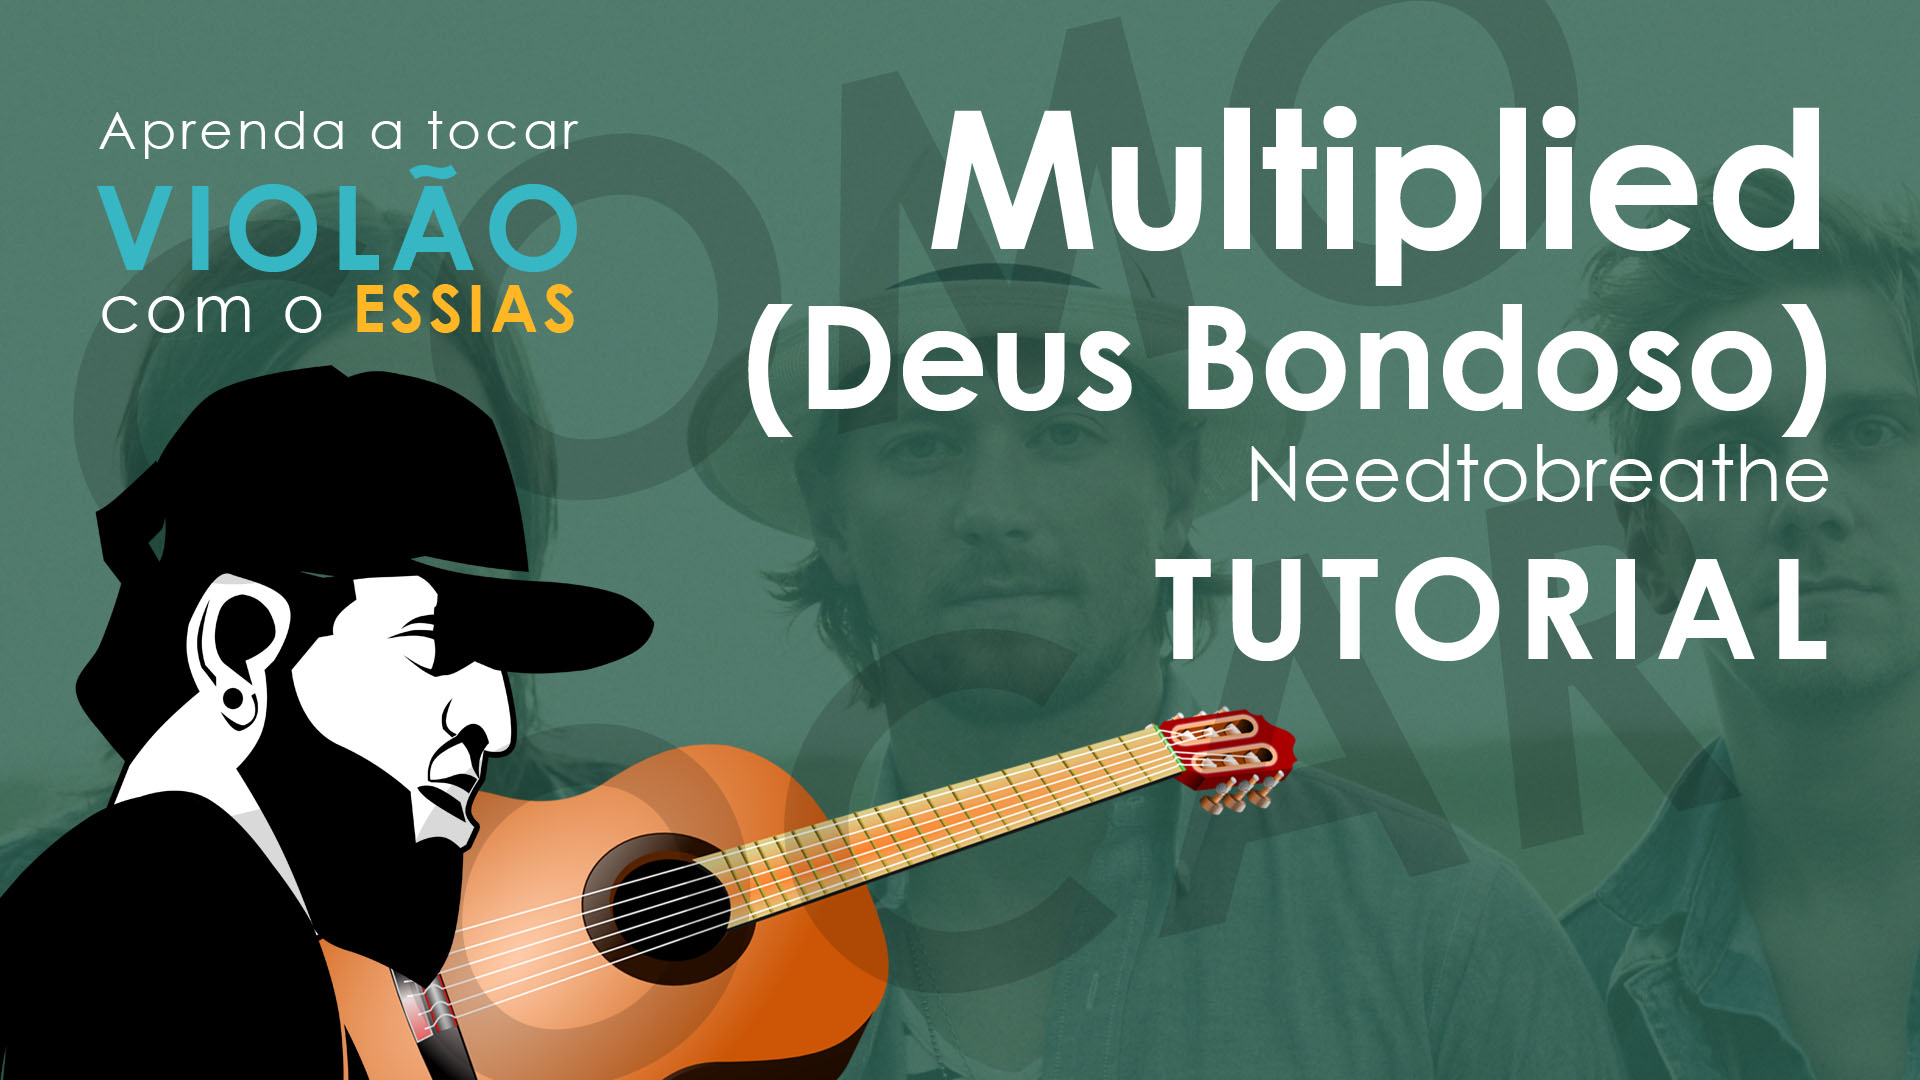 Como Tocar Multiplied (Deus Bondoso) – Needtobreathe (Tutorial de Violão)